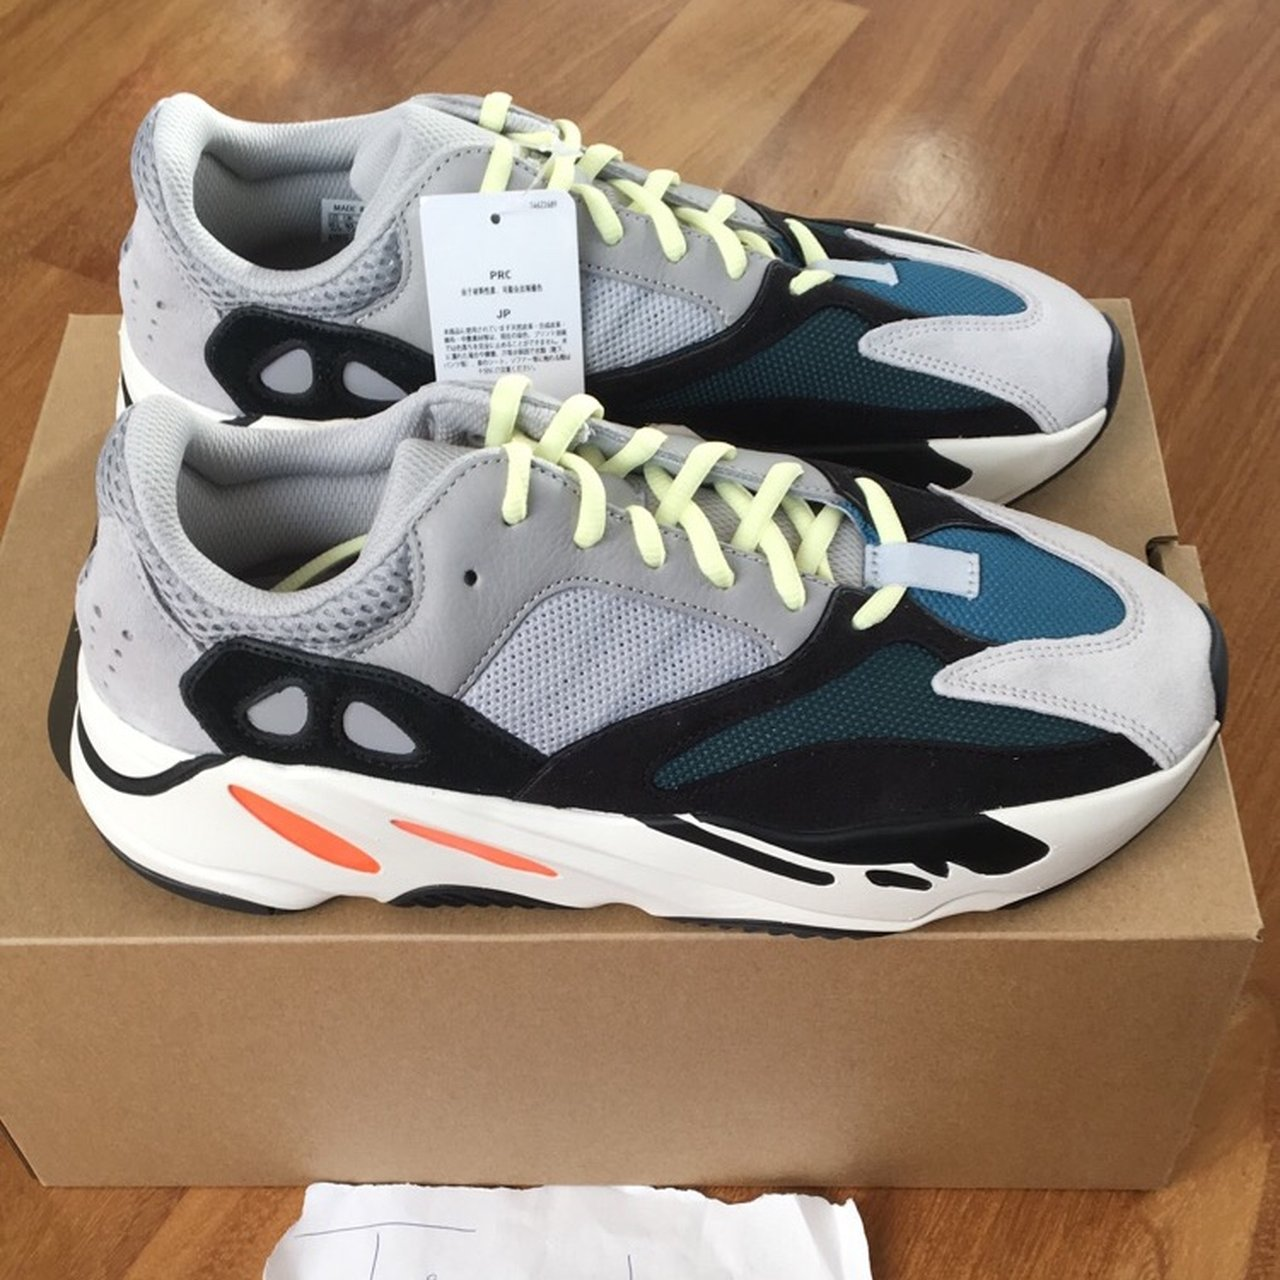 83cb51d6d WANT TO SELL ADIDAS YEEZY WAVE RUNNER 700 SOLID GREY SIZE   - Depop